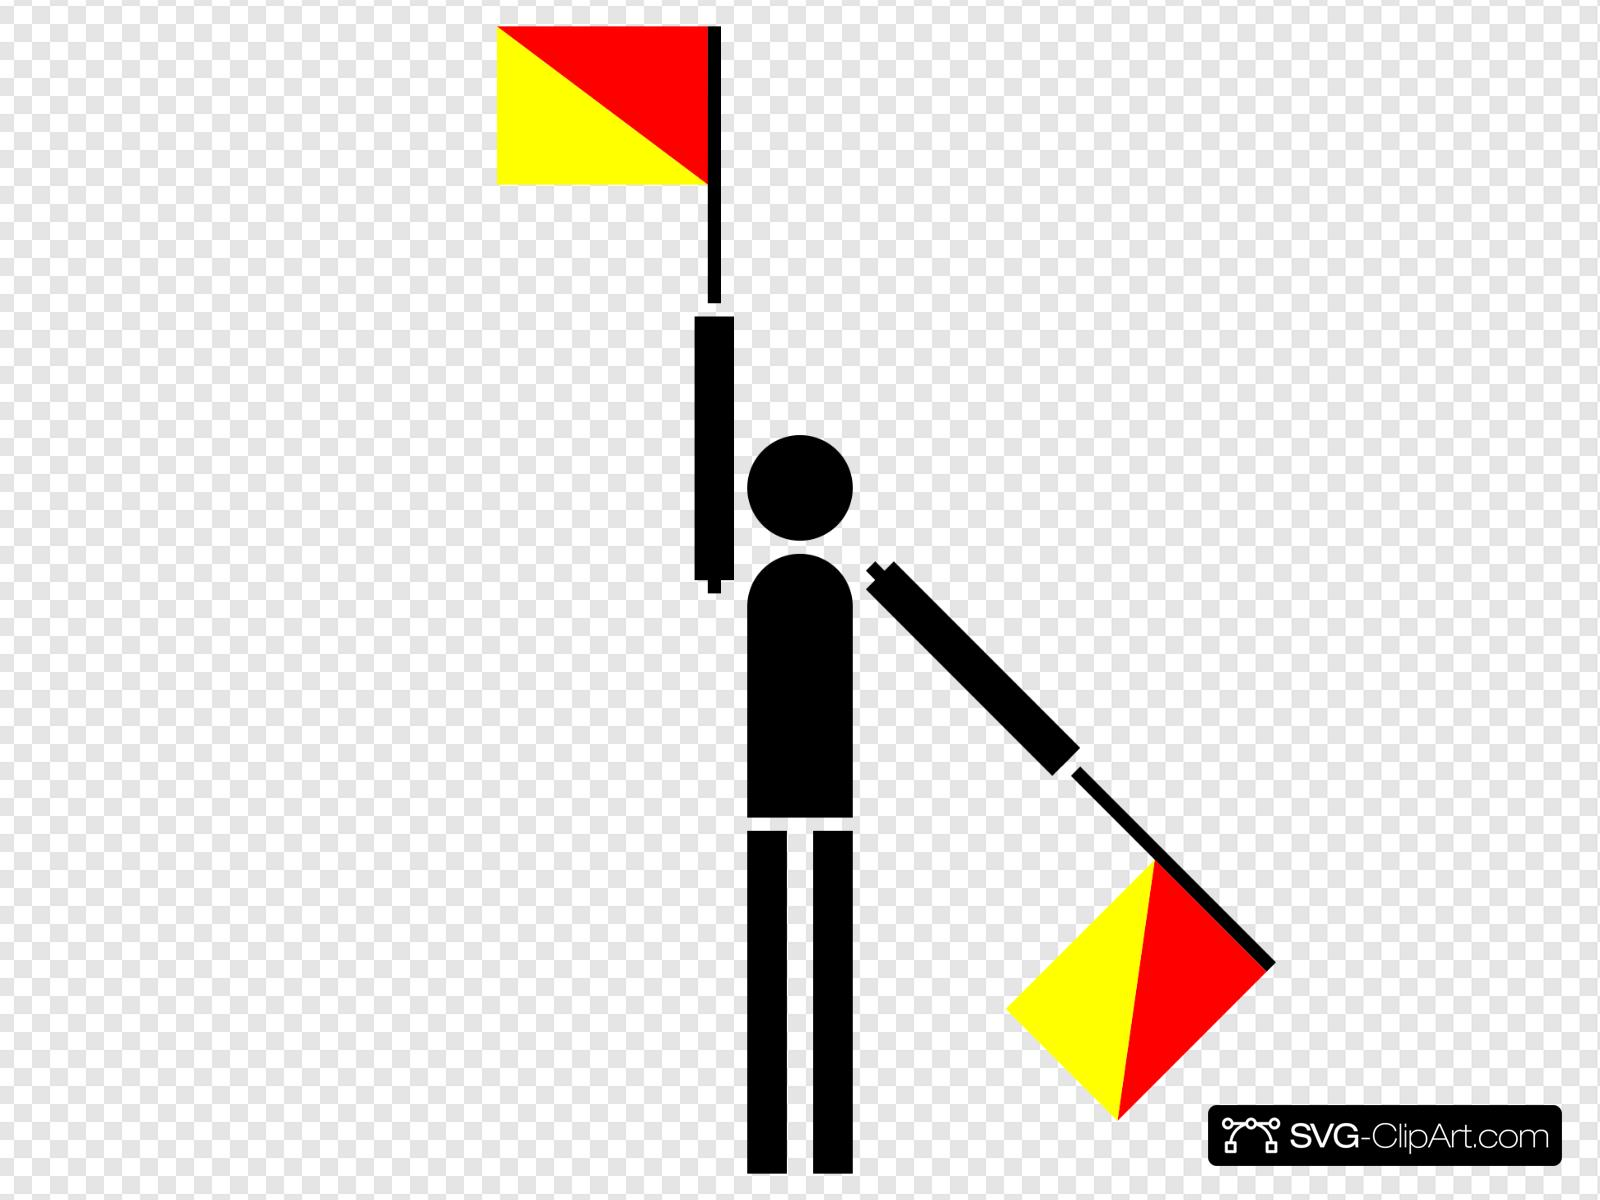 Naval Semaphore Flag V Clip art, Icon and SVG.